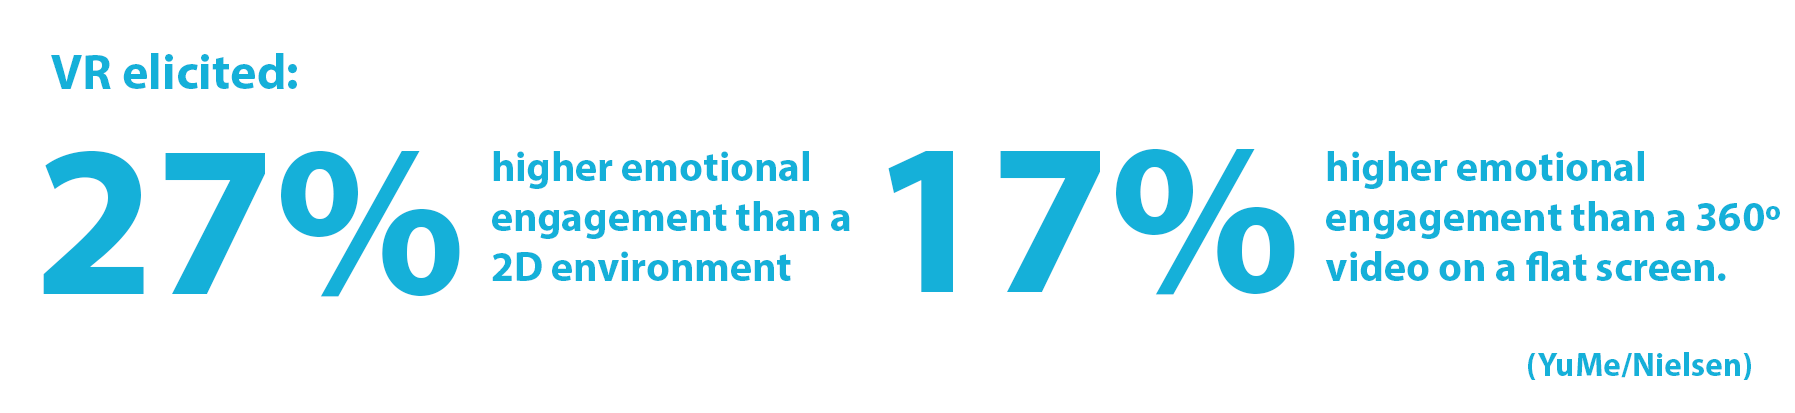 Statistic: VR elicited 27% higher emotional engagement than a 2D environment, and 17% higher emotional engagement than a 360-degree video on a flat screen (YuMe/Nielsen).